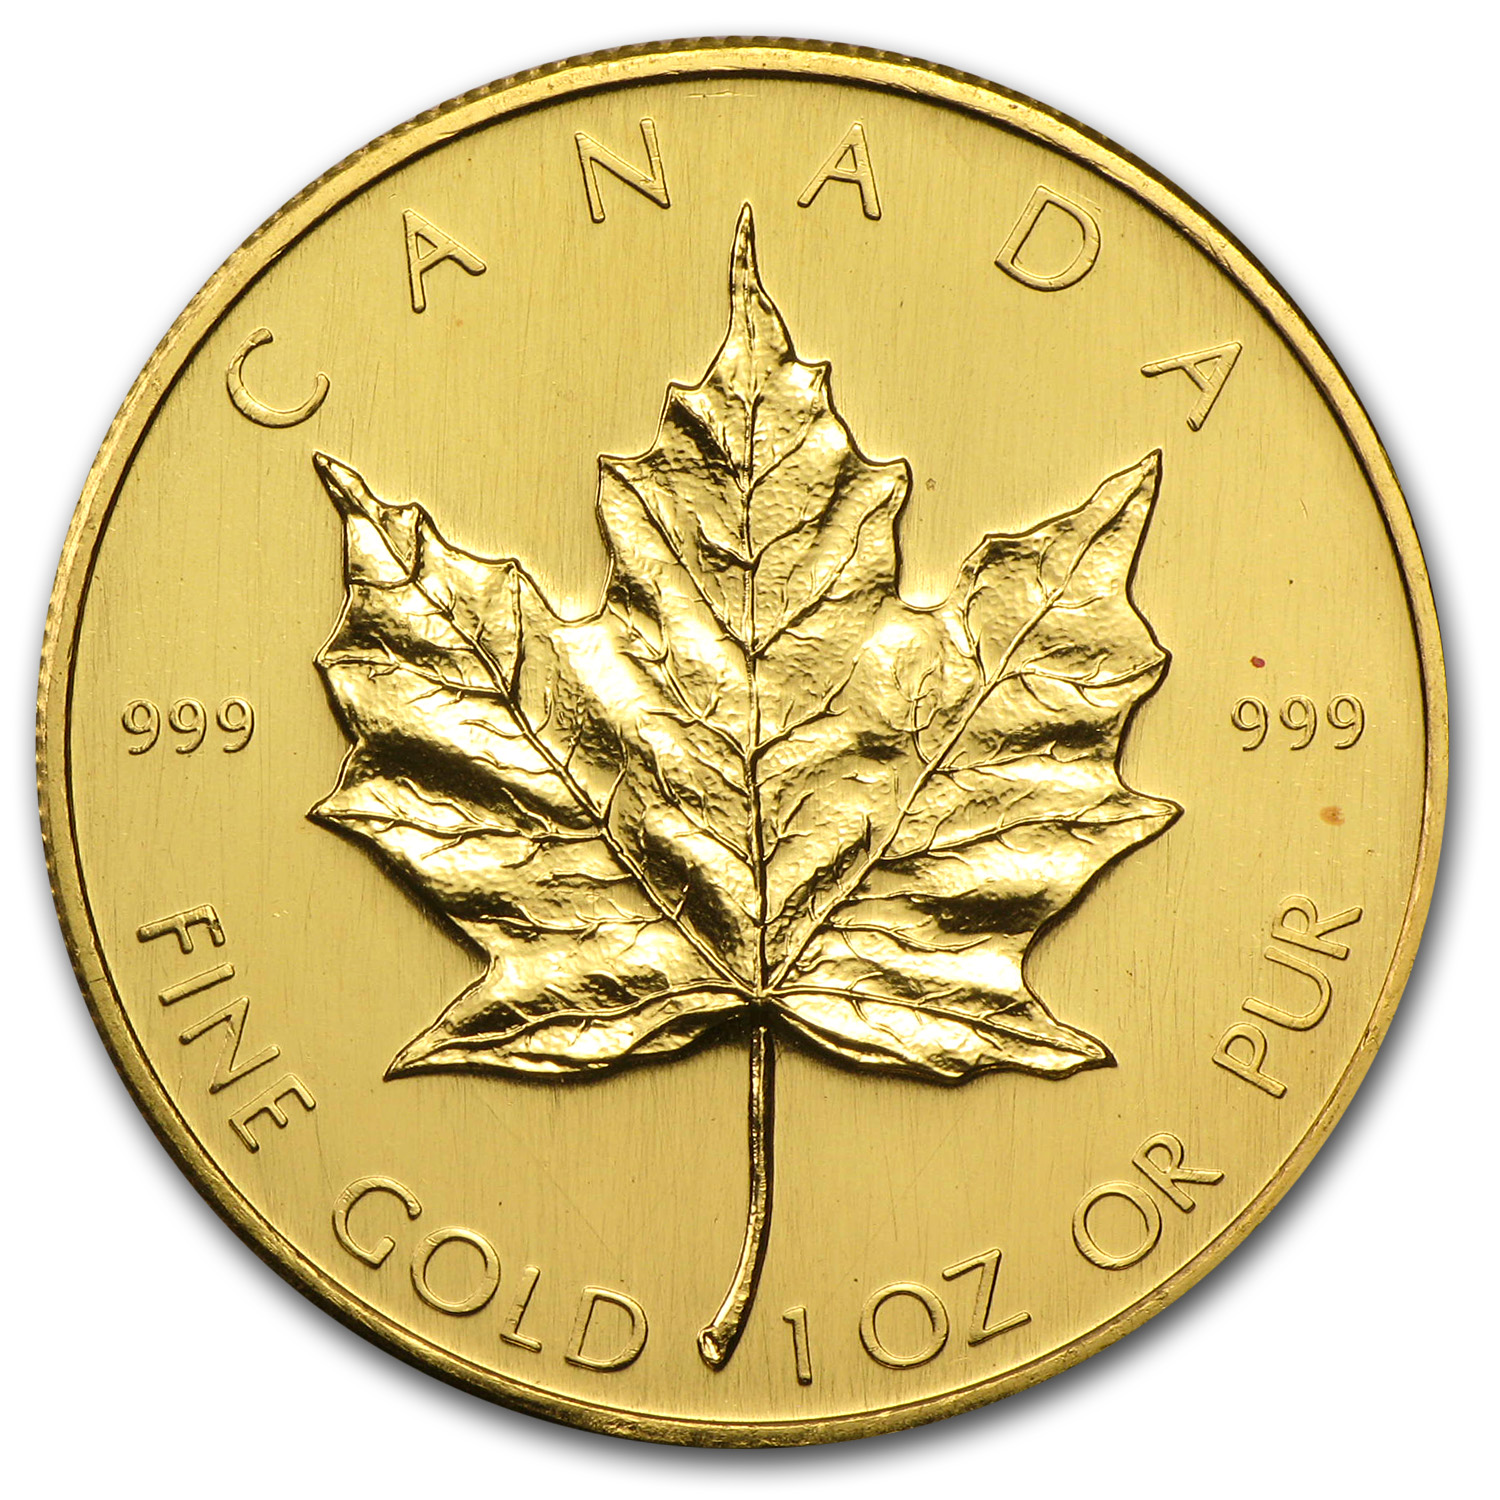 1980 1 oz Gold Canadian Maple Leaf - Brilliant Uncirculated